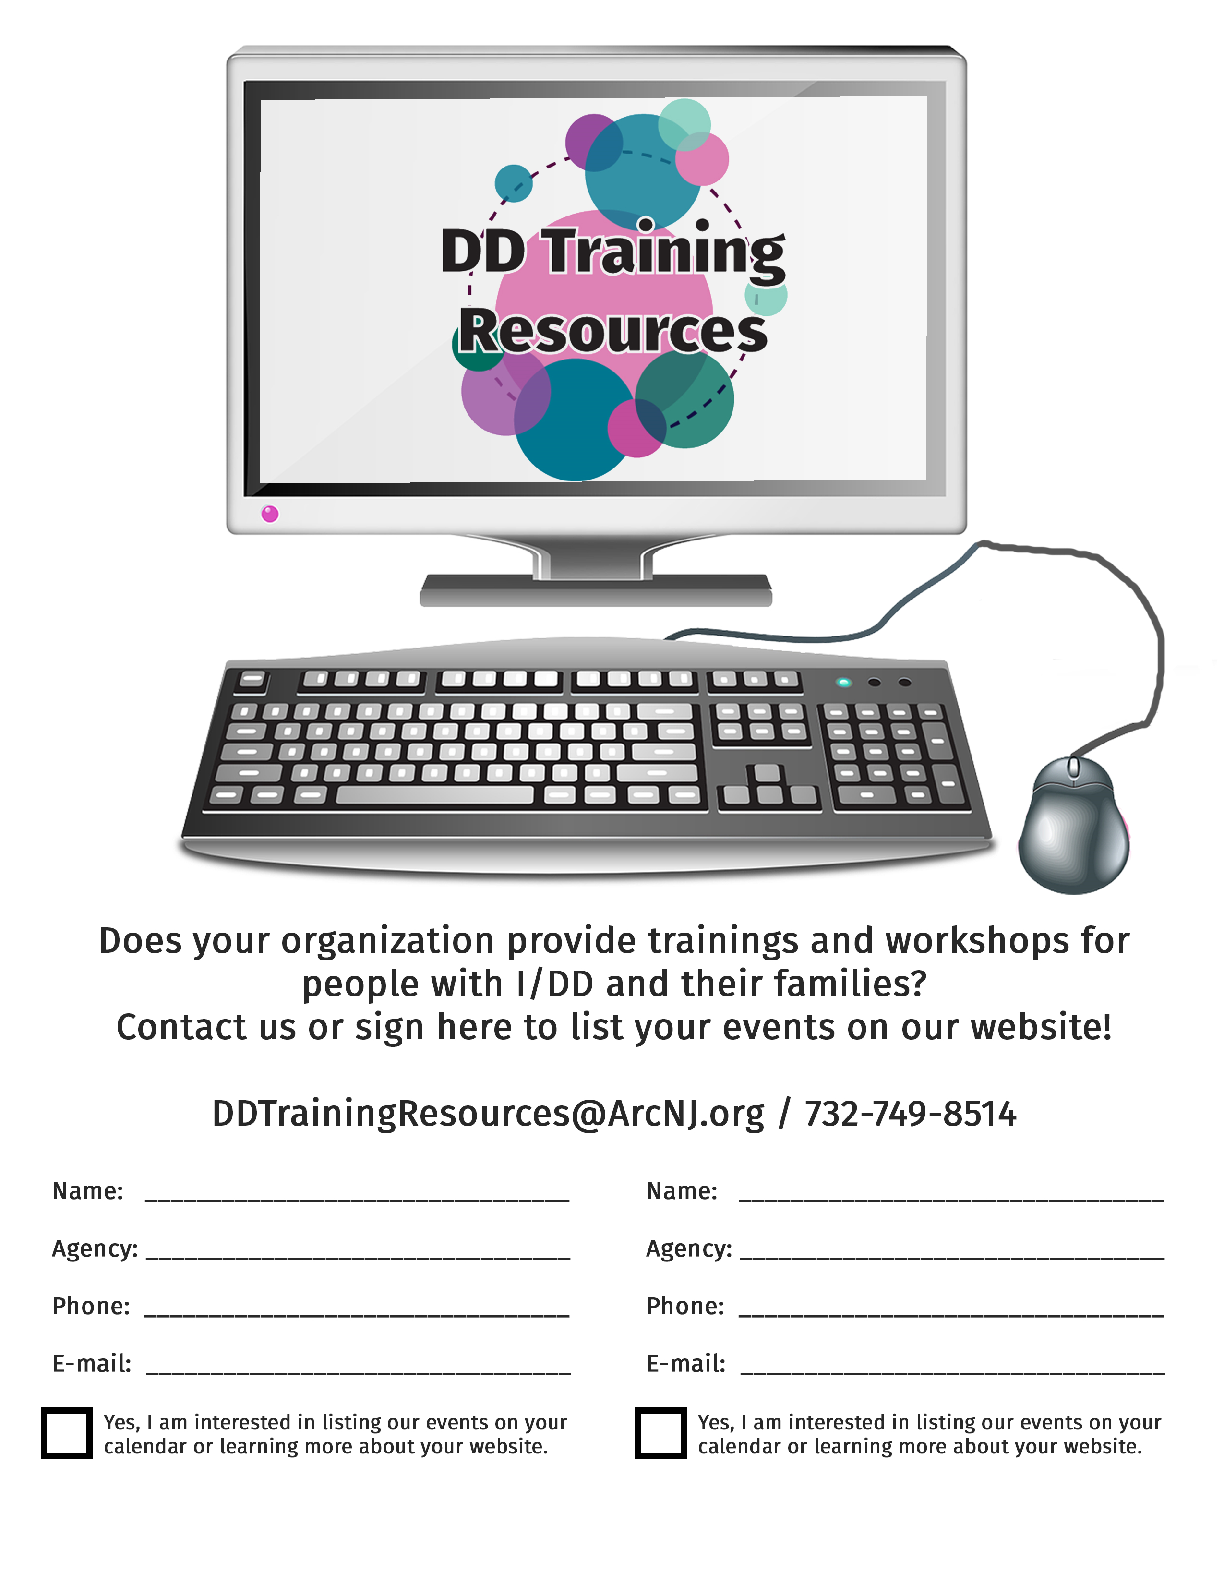 Does Your Organization Provide Trainings or Workshops?